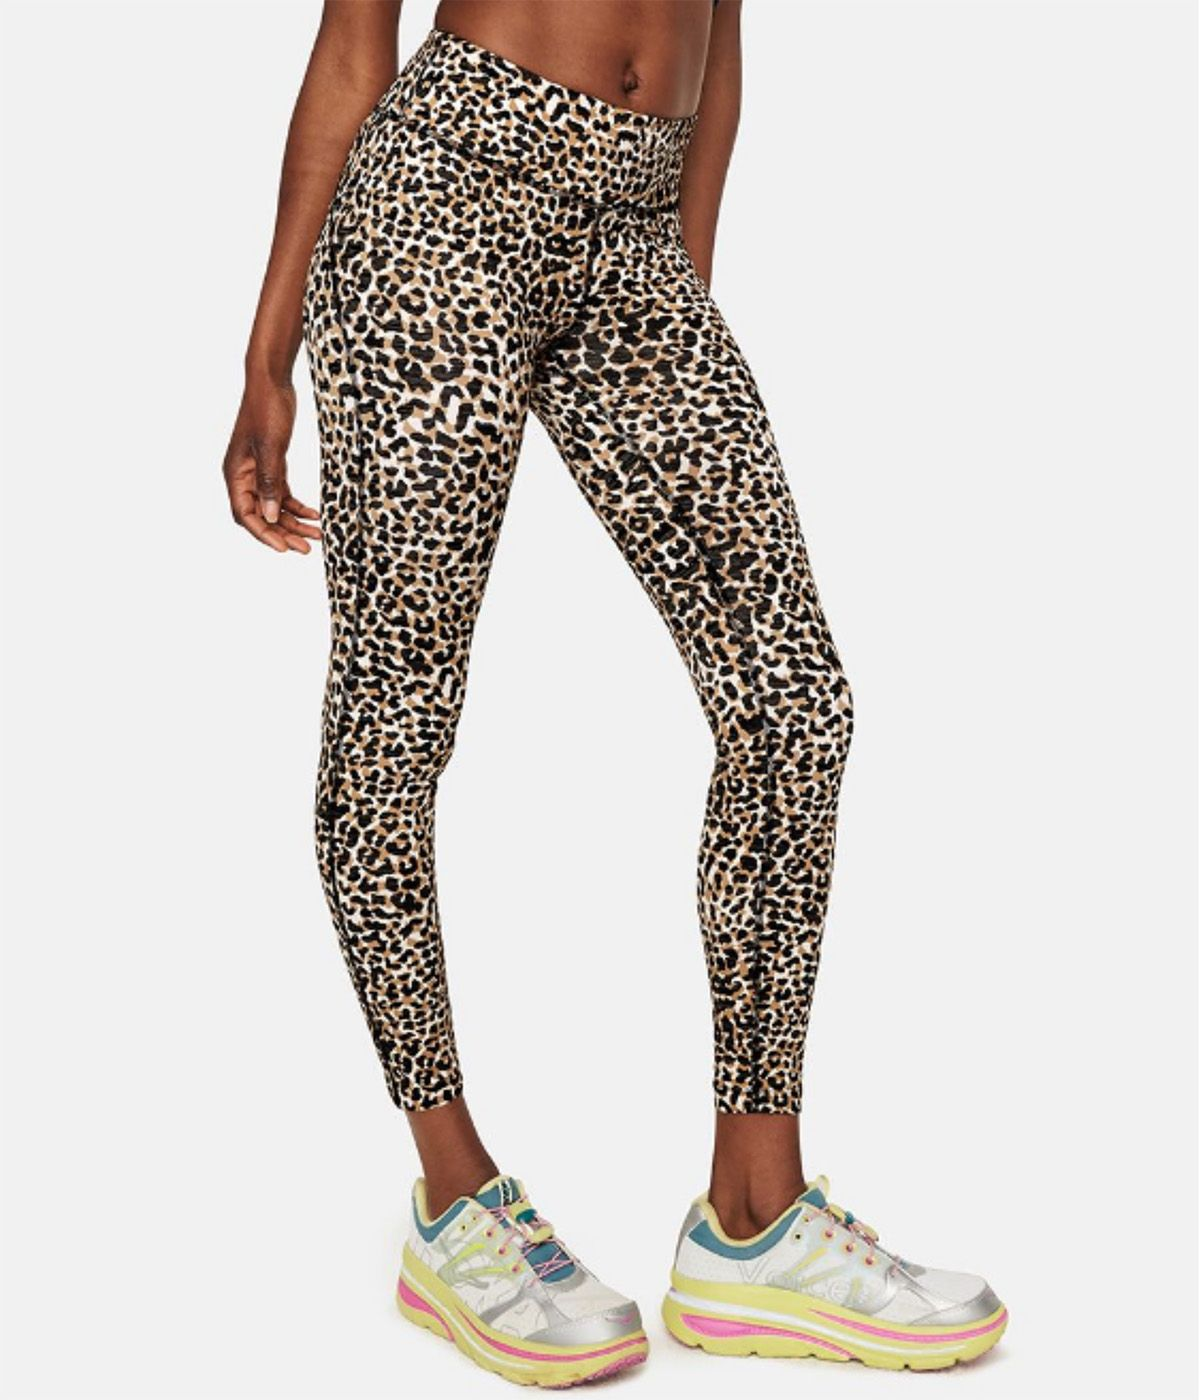 We'd Give Up Basic Black Leggings for These 6 Fresh Spring Trends 4